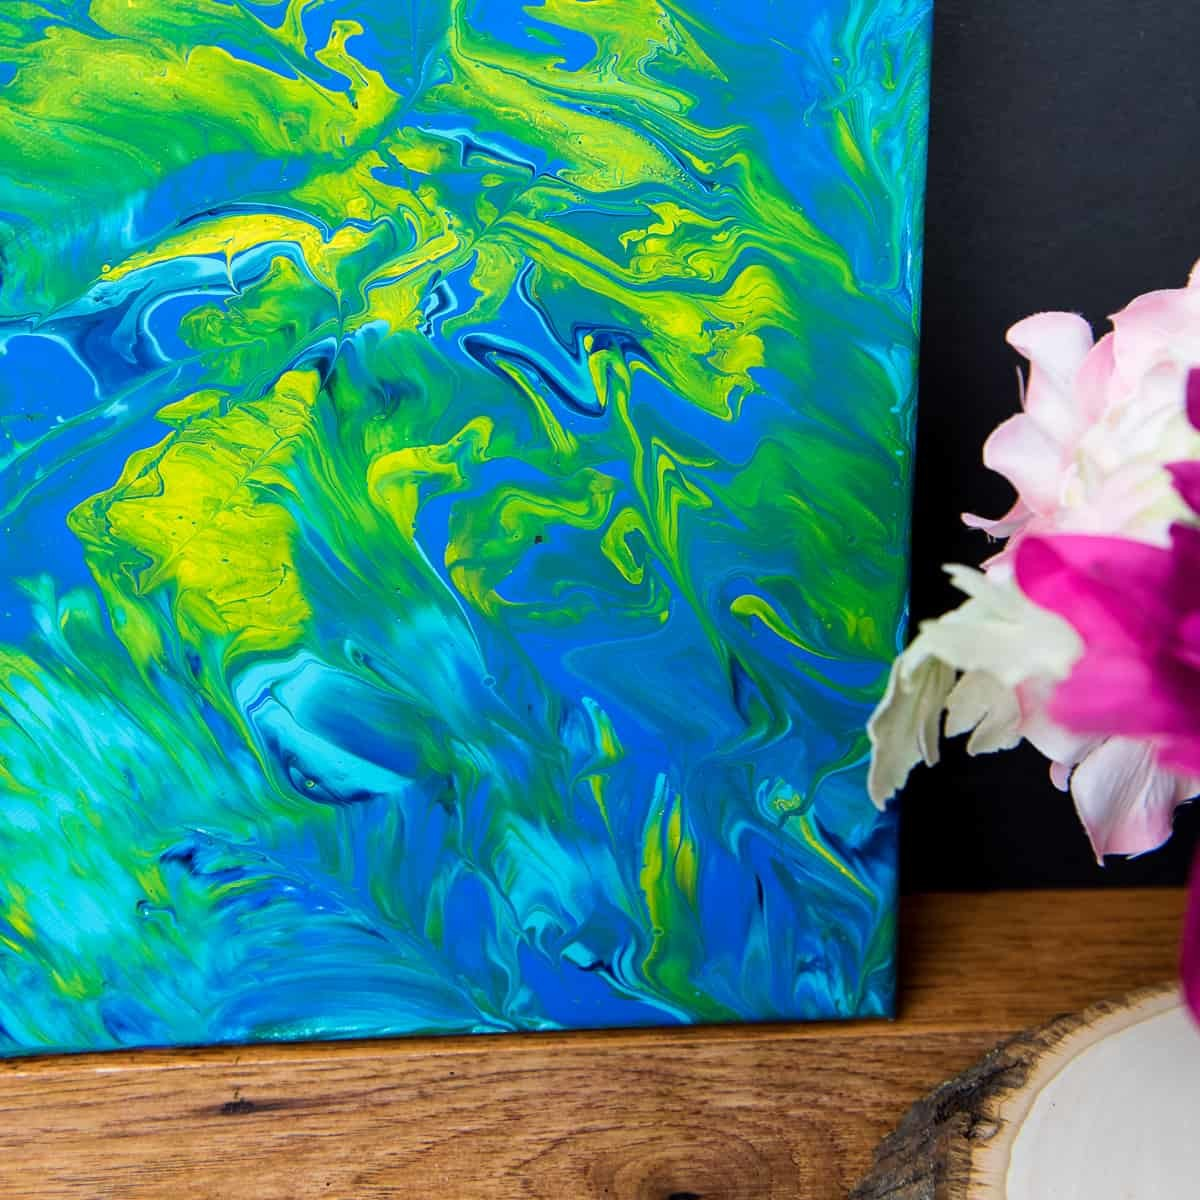 Acrylic Pour Canvas - This is one messy DIY but it is really fun to make too! You can get creative with color and design and no two art projects will be the same! It's the perfect art piece for your home that YOU made all on your own!